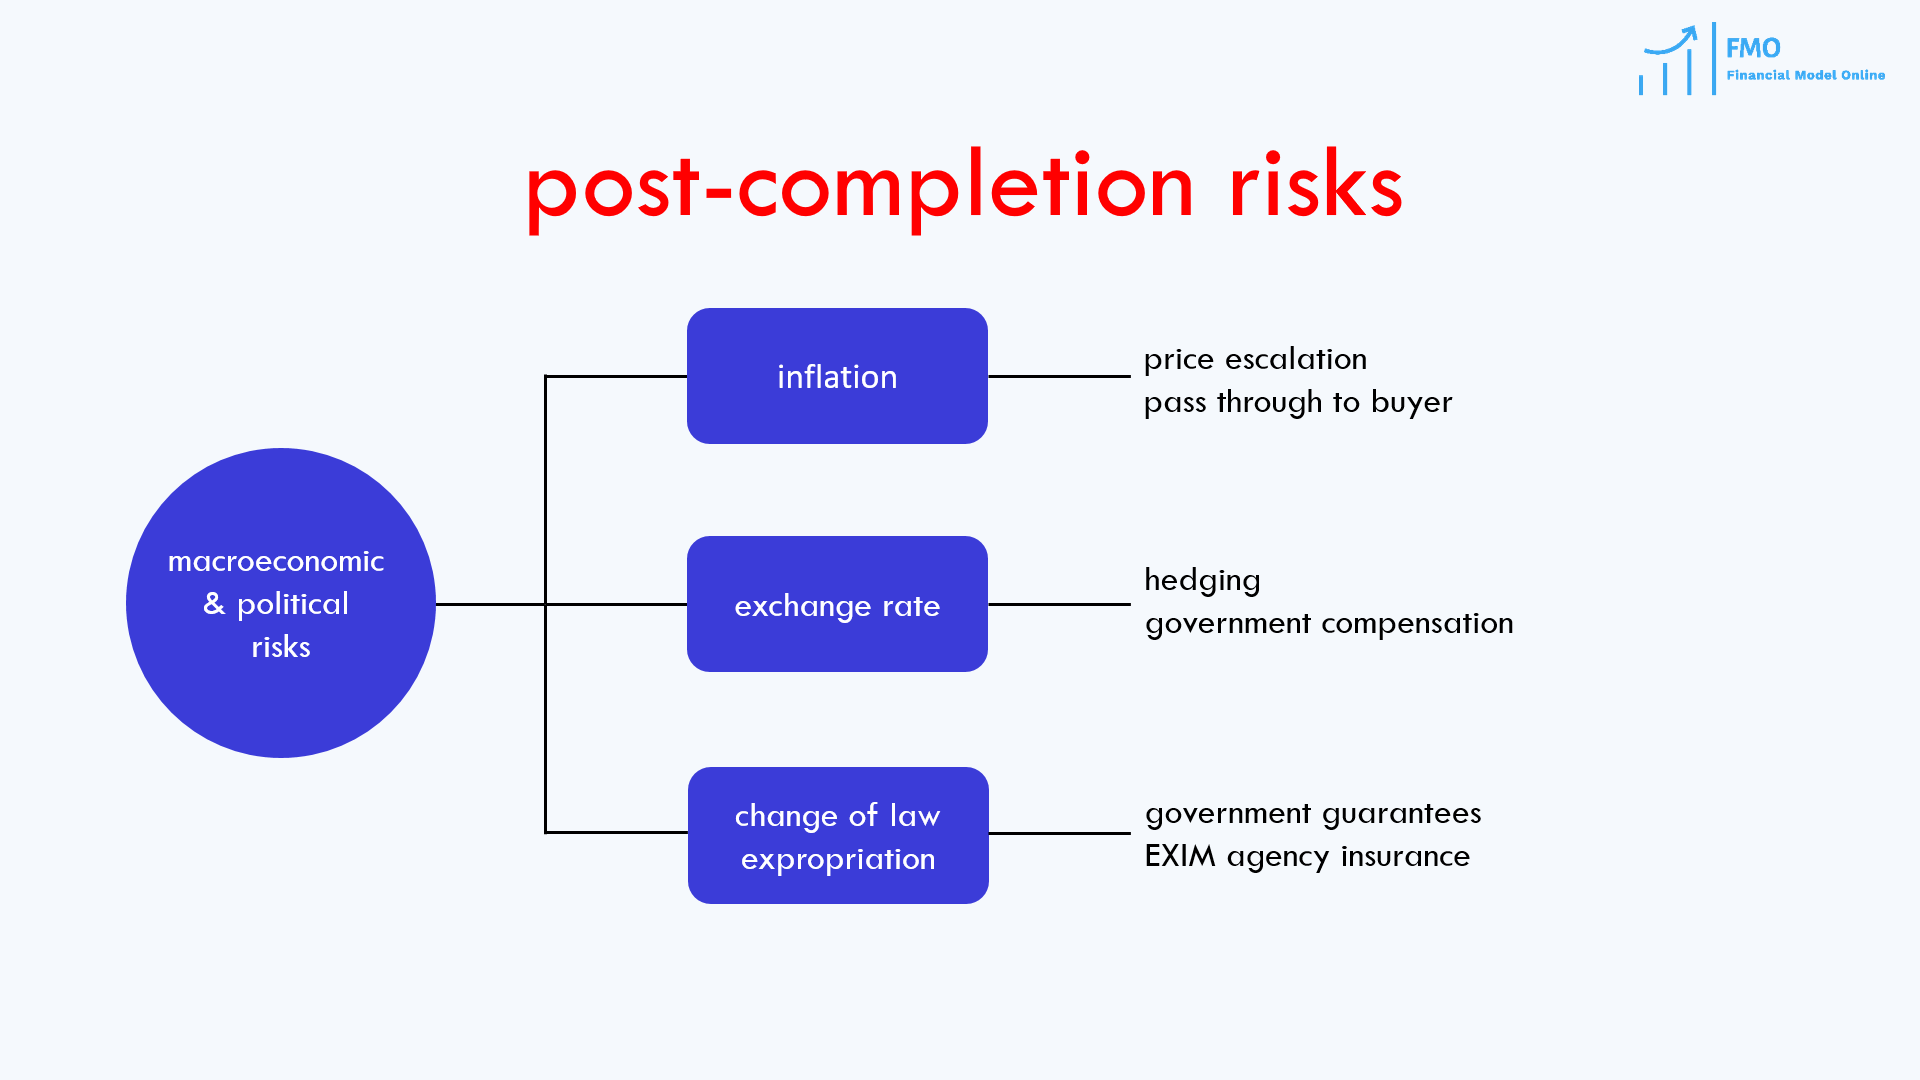 macroeconomic and political risks in project finance